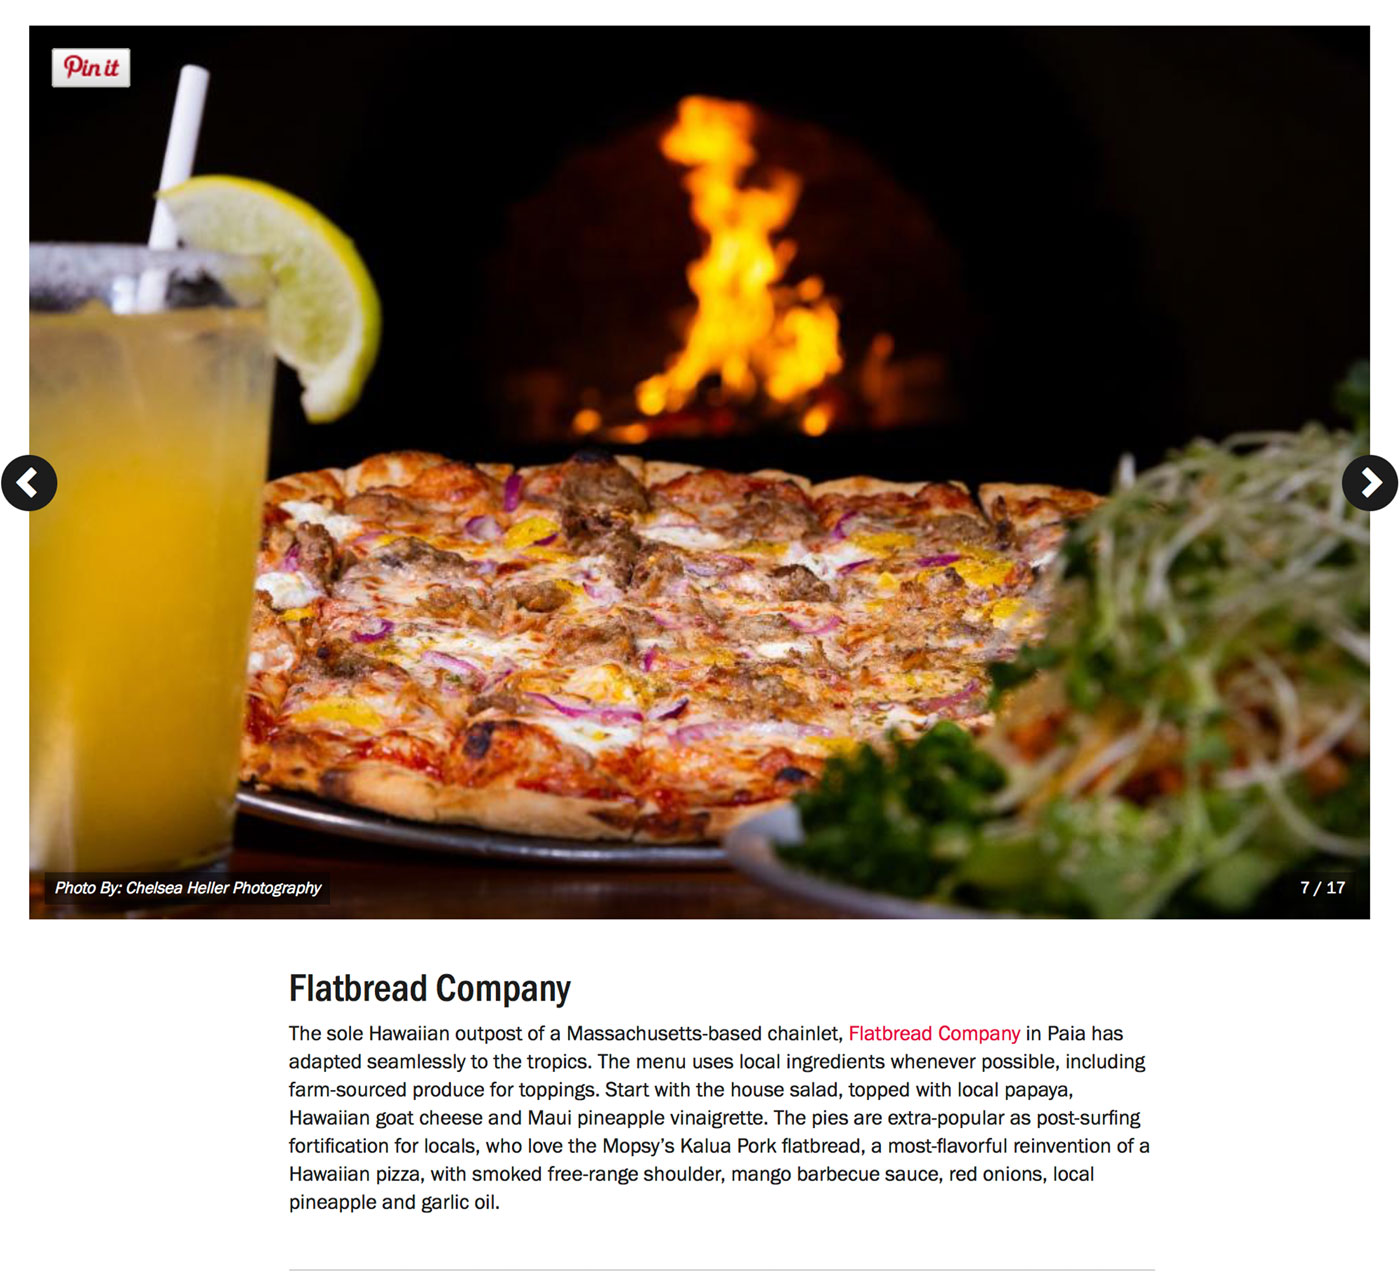 "Screenshot from Food Network's Guide to:<br><a href=""https://www.foodnetwork.com/restaurants/photos/restaurant-guide-maui"" target=""_blank"" rel=""noopener noreferrer"">""The Best Restaurants on Maui""</a> - Flatbread Company.</br>"